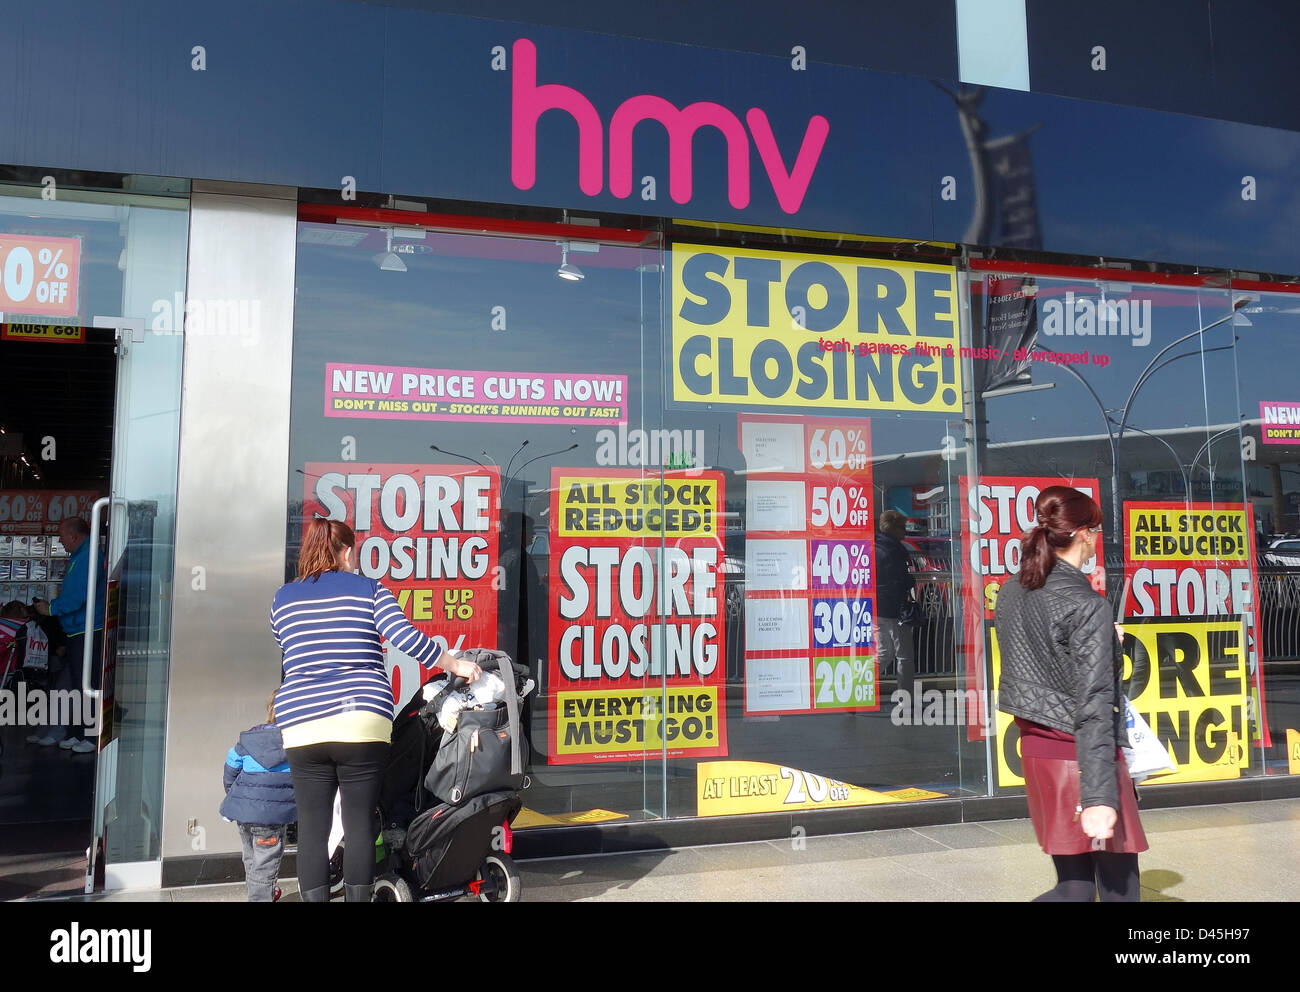 HMV store closing sale, Bournemouth Castlepoint, Dorset, Britain, UK - Stock Image